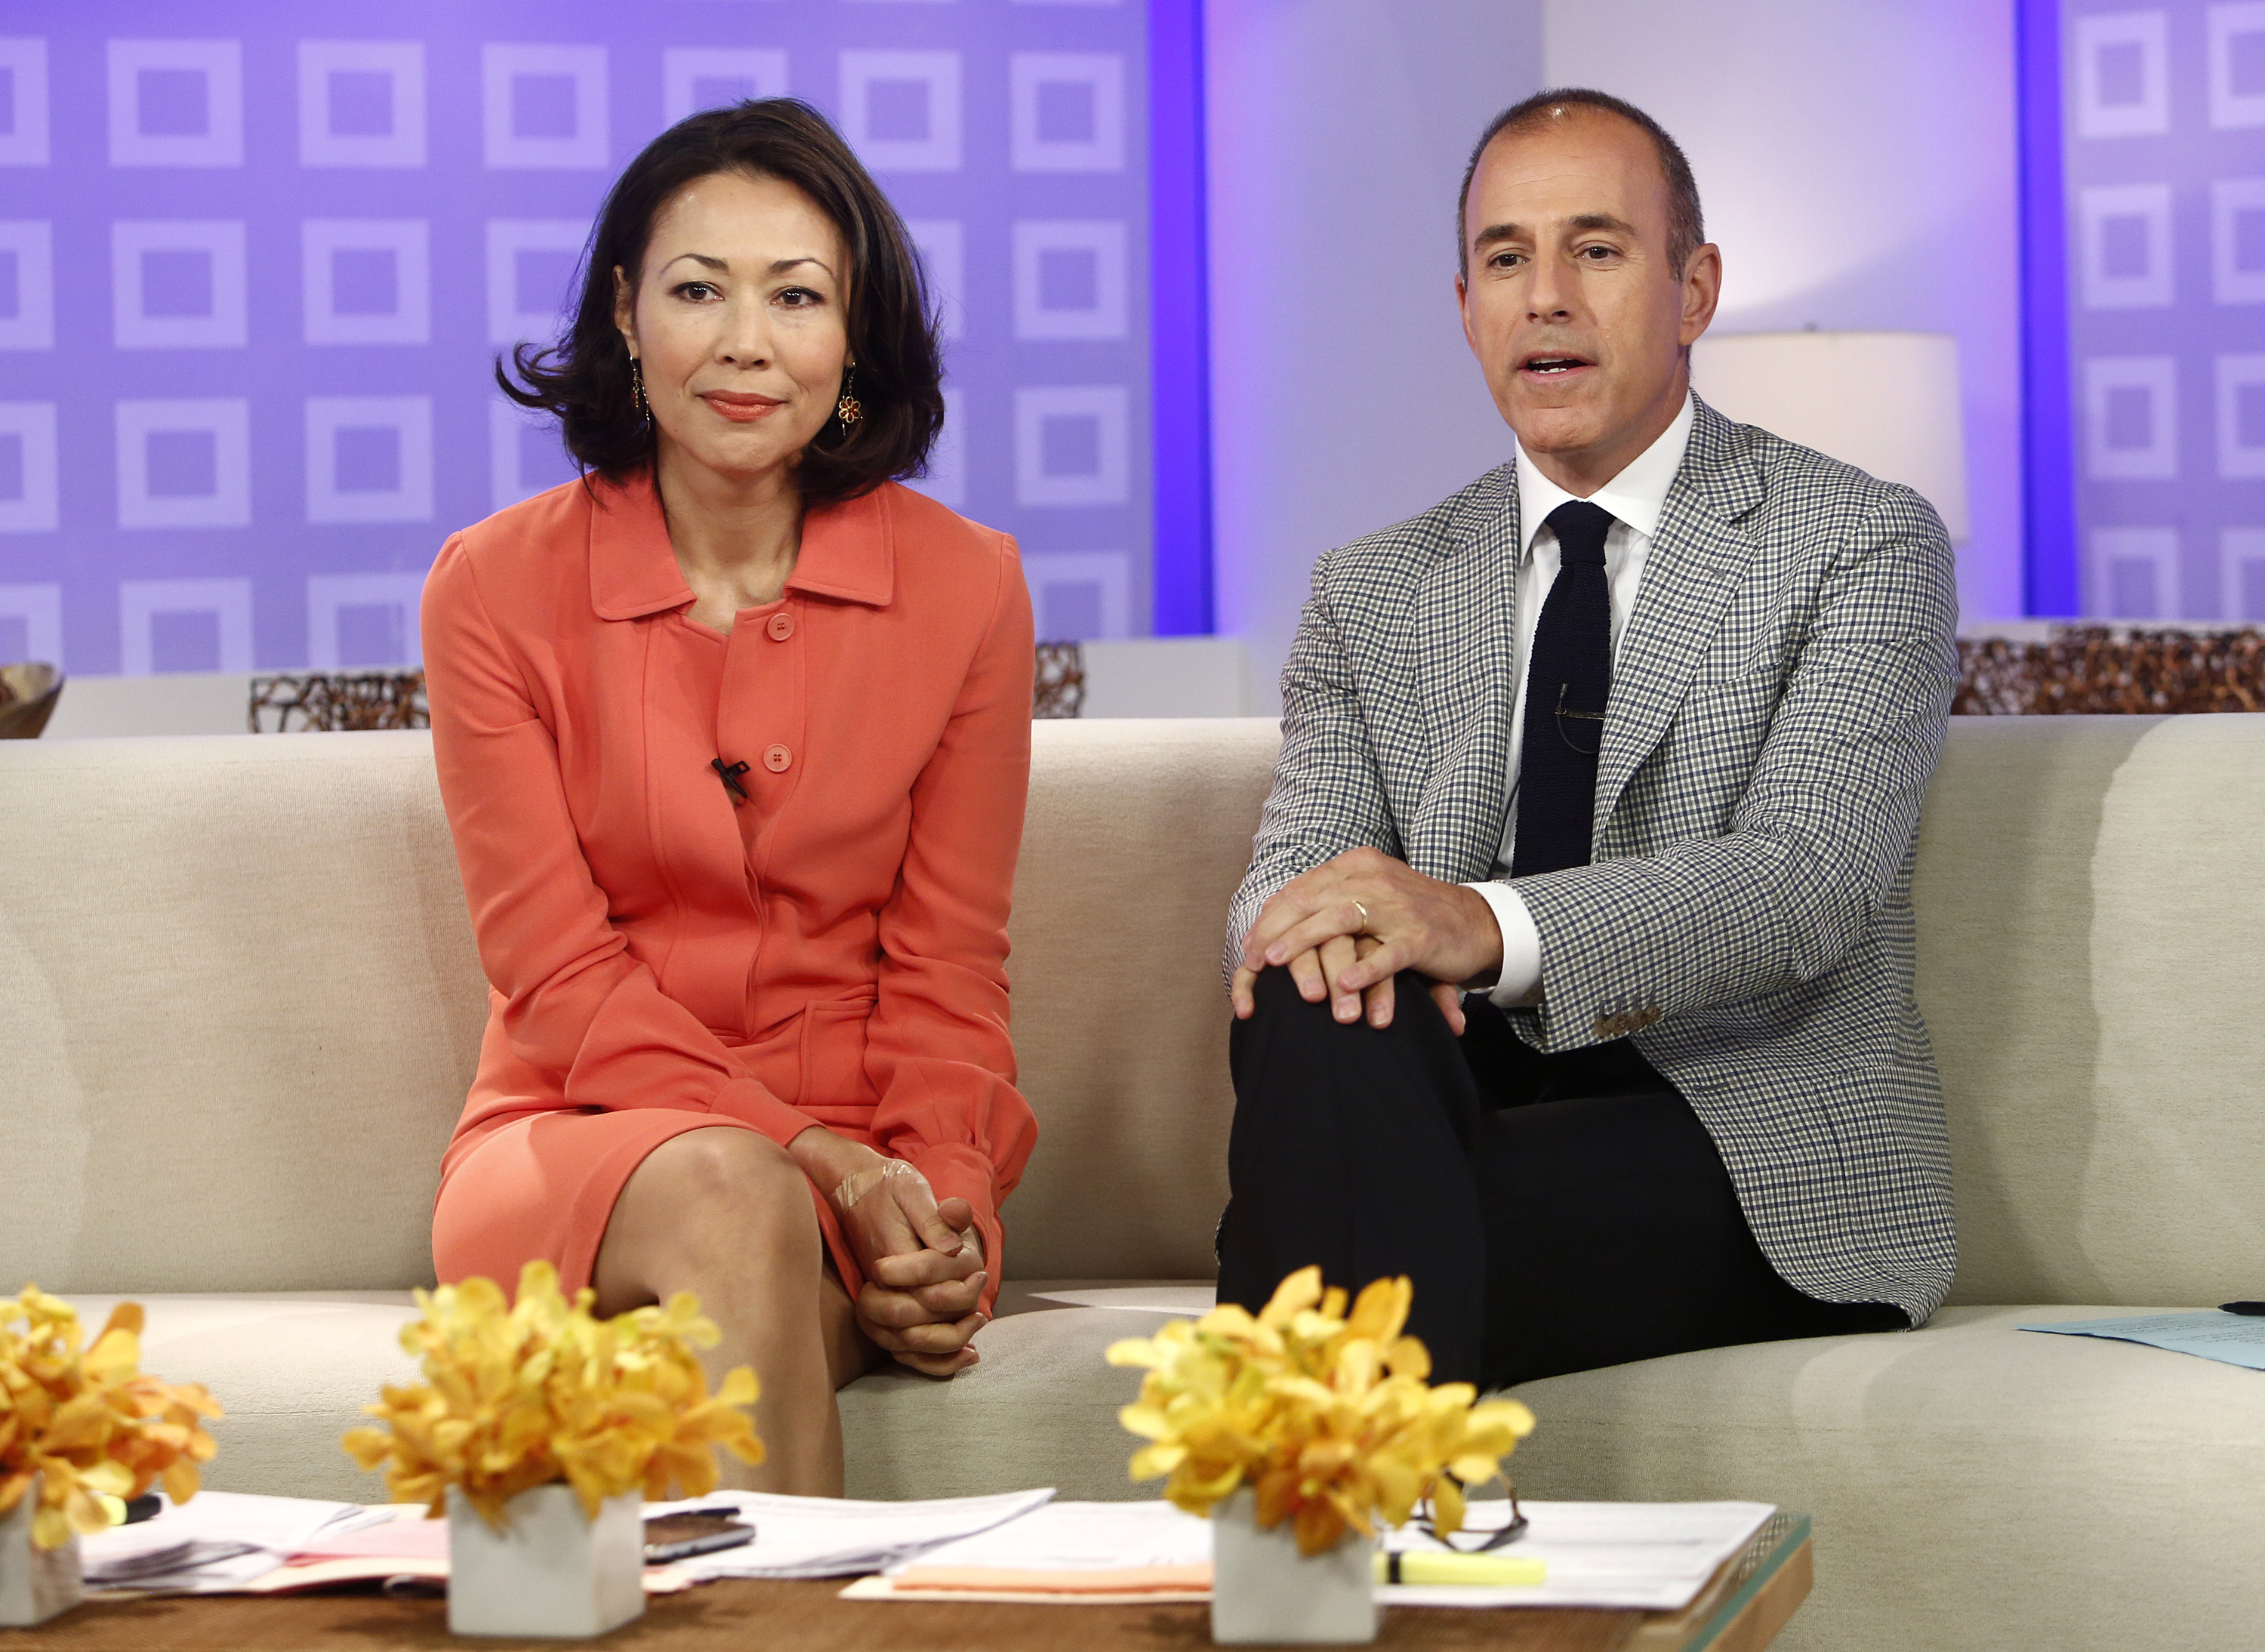 Ann Curry Matt Lauer Getty Images